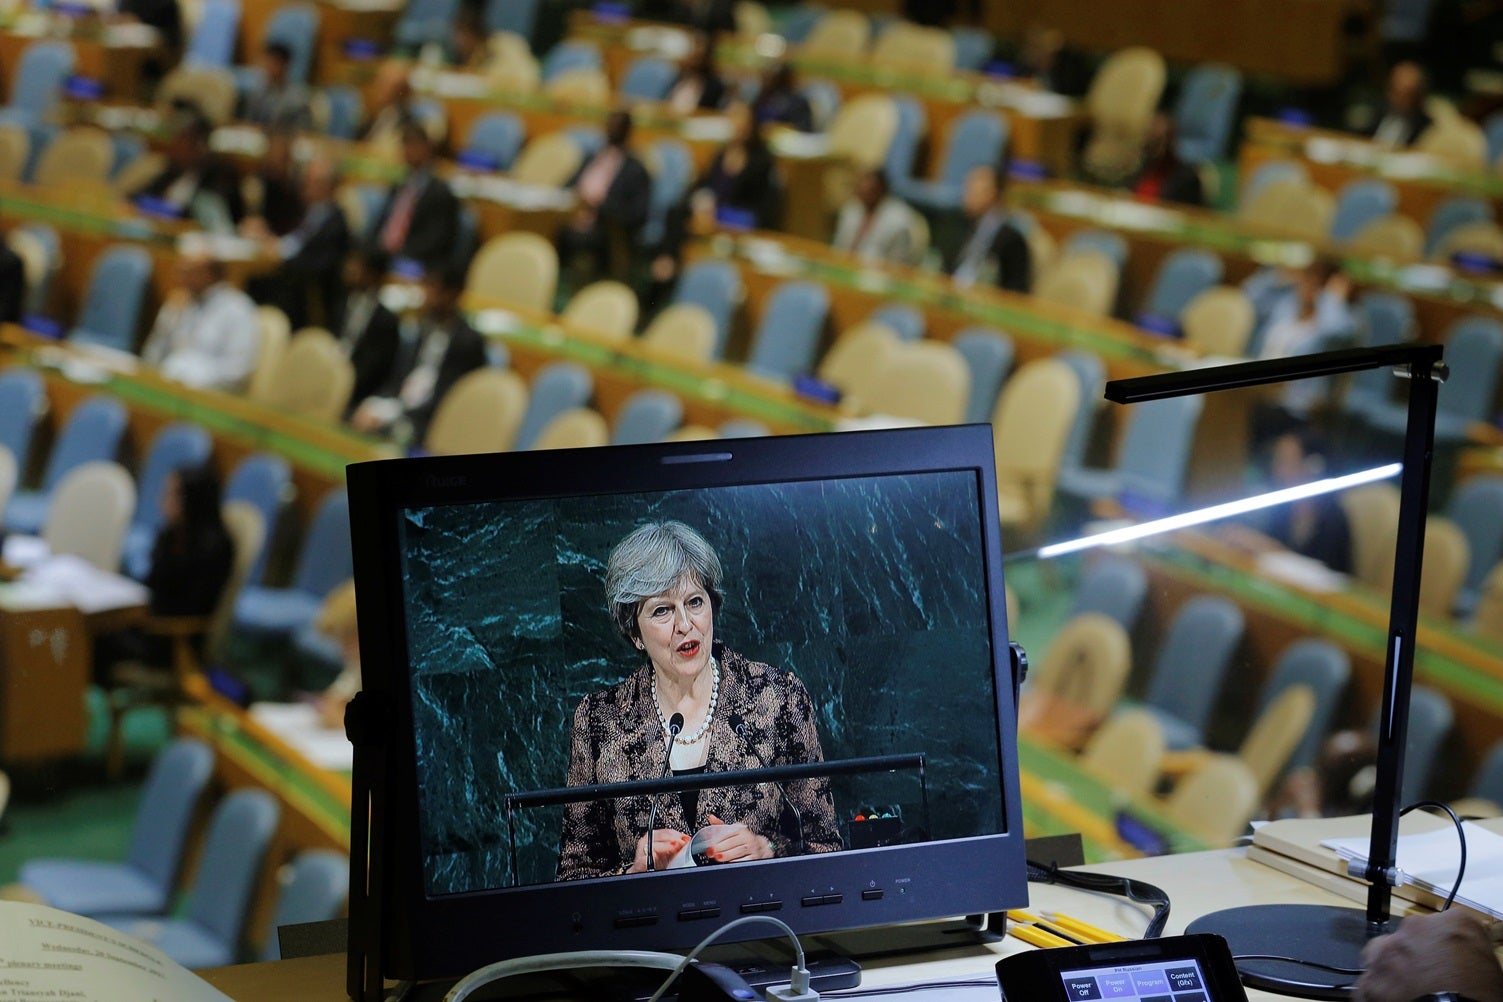 Theresa May: Reino Unido quer ser